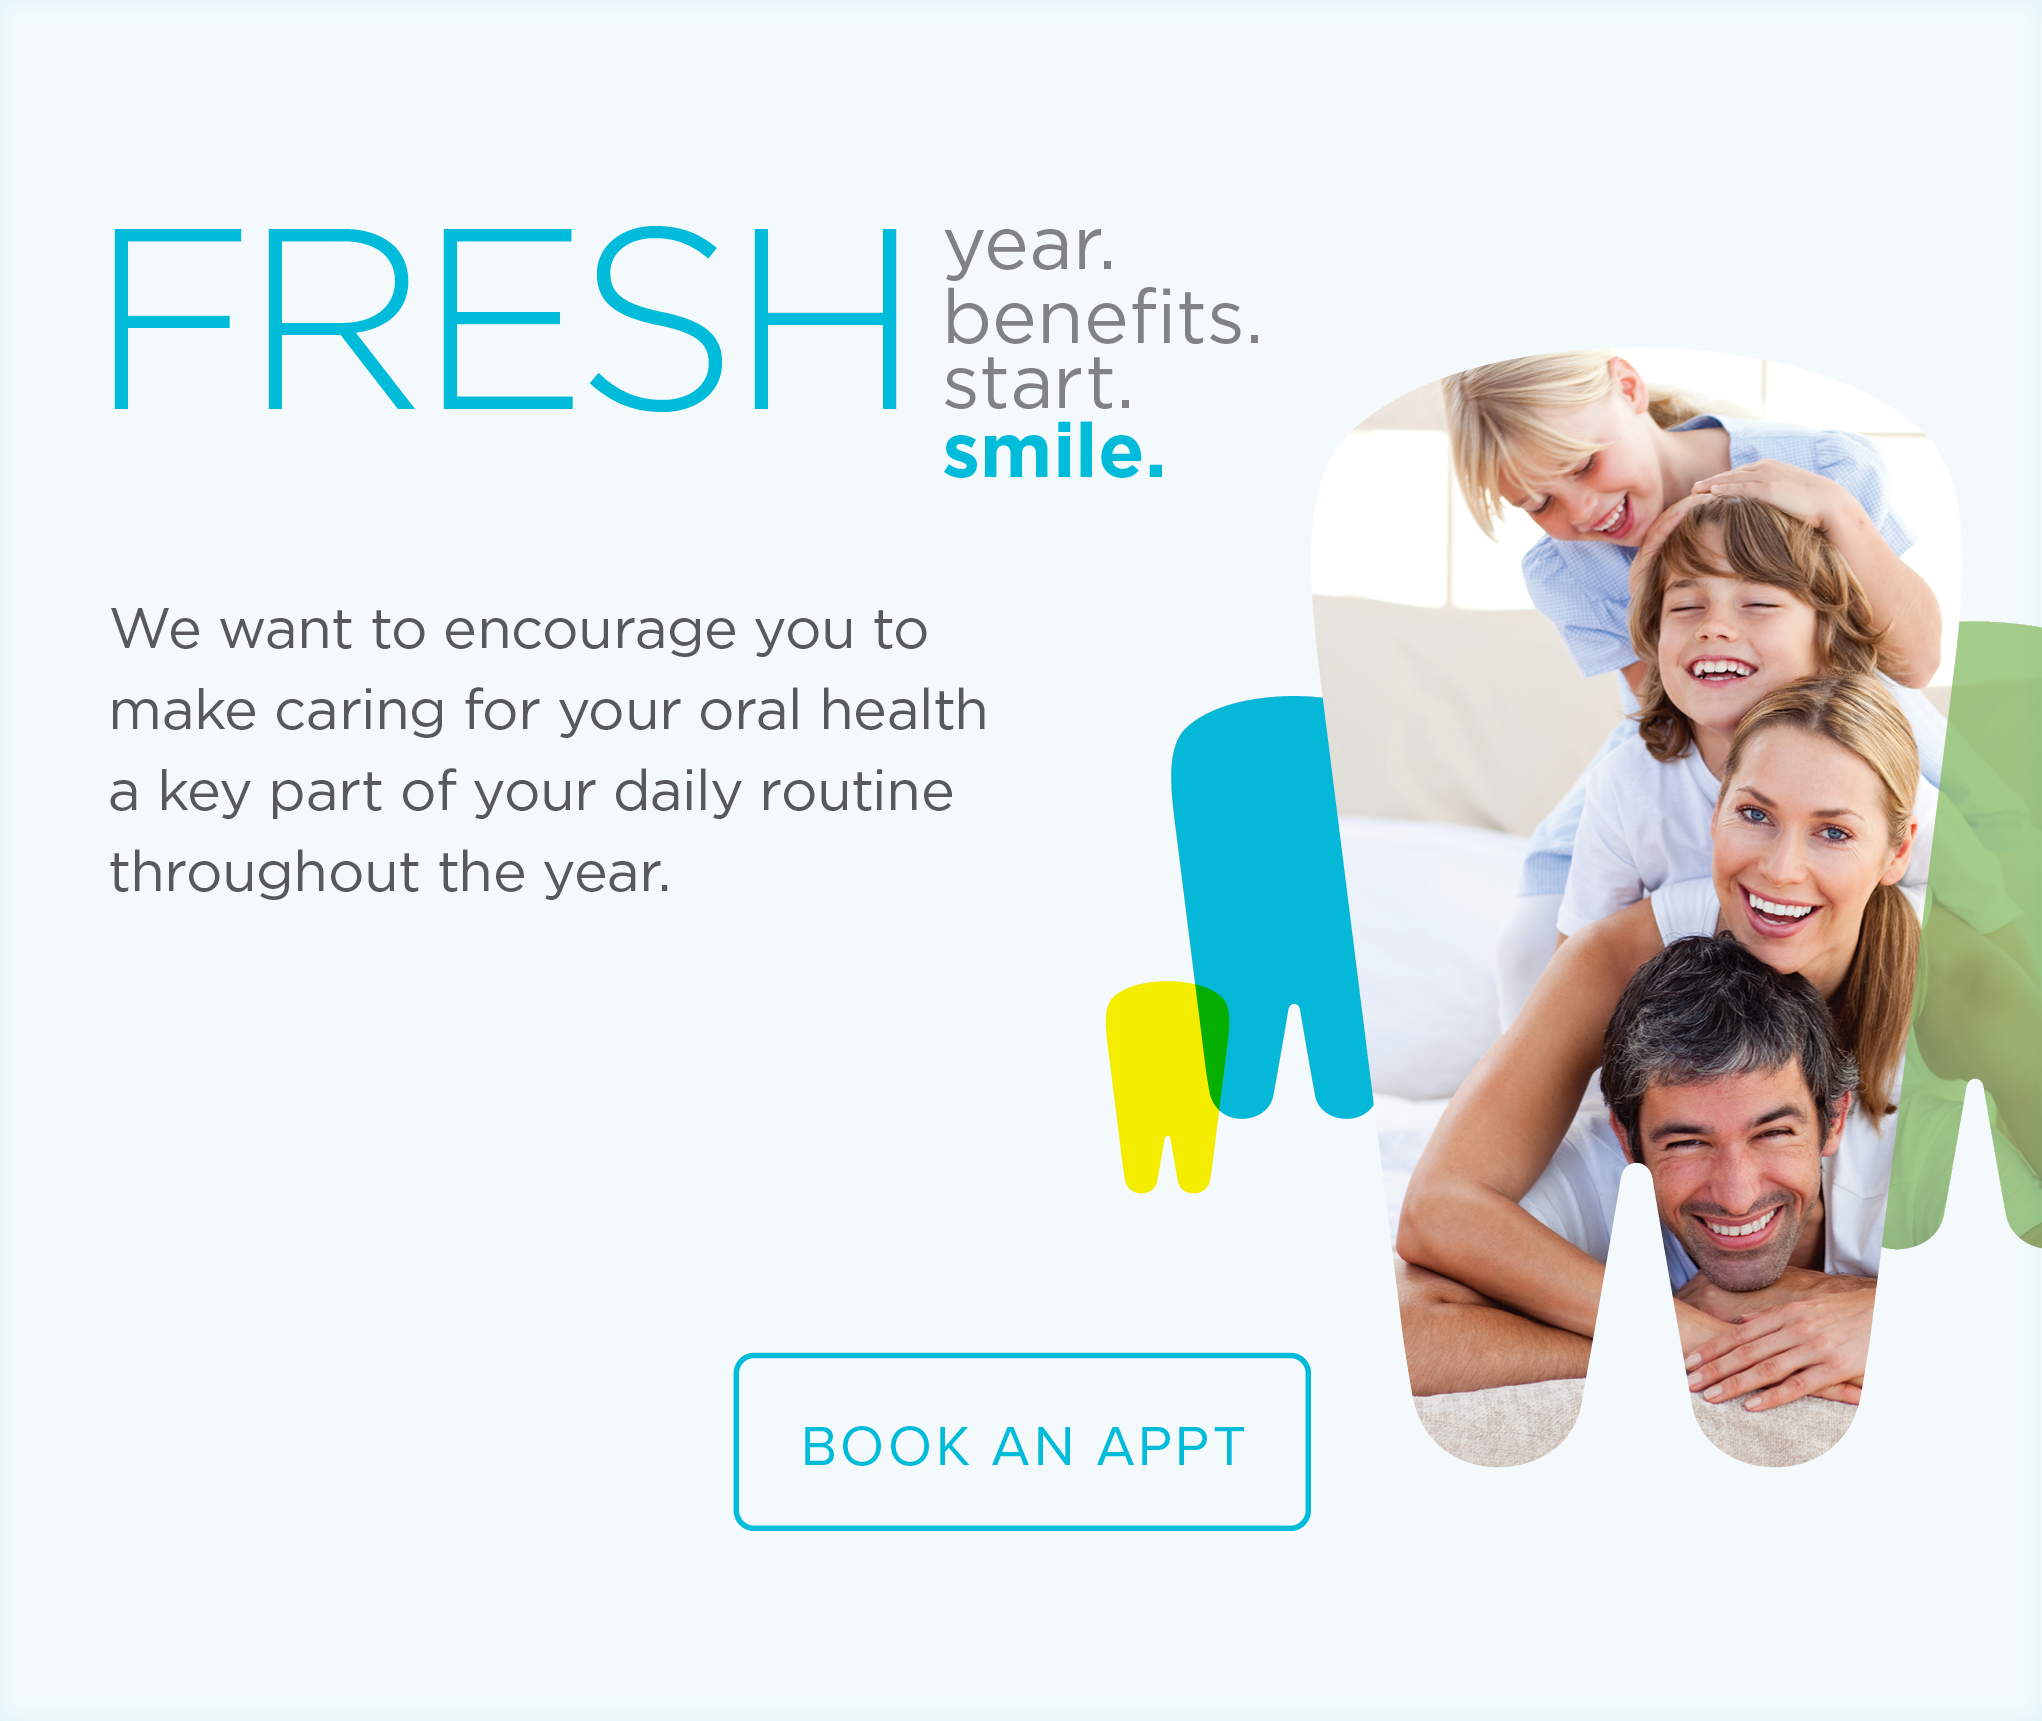 Spanish Springs Modern Dentistry - Make the Most of Your Benefits